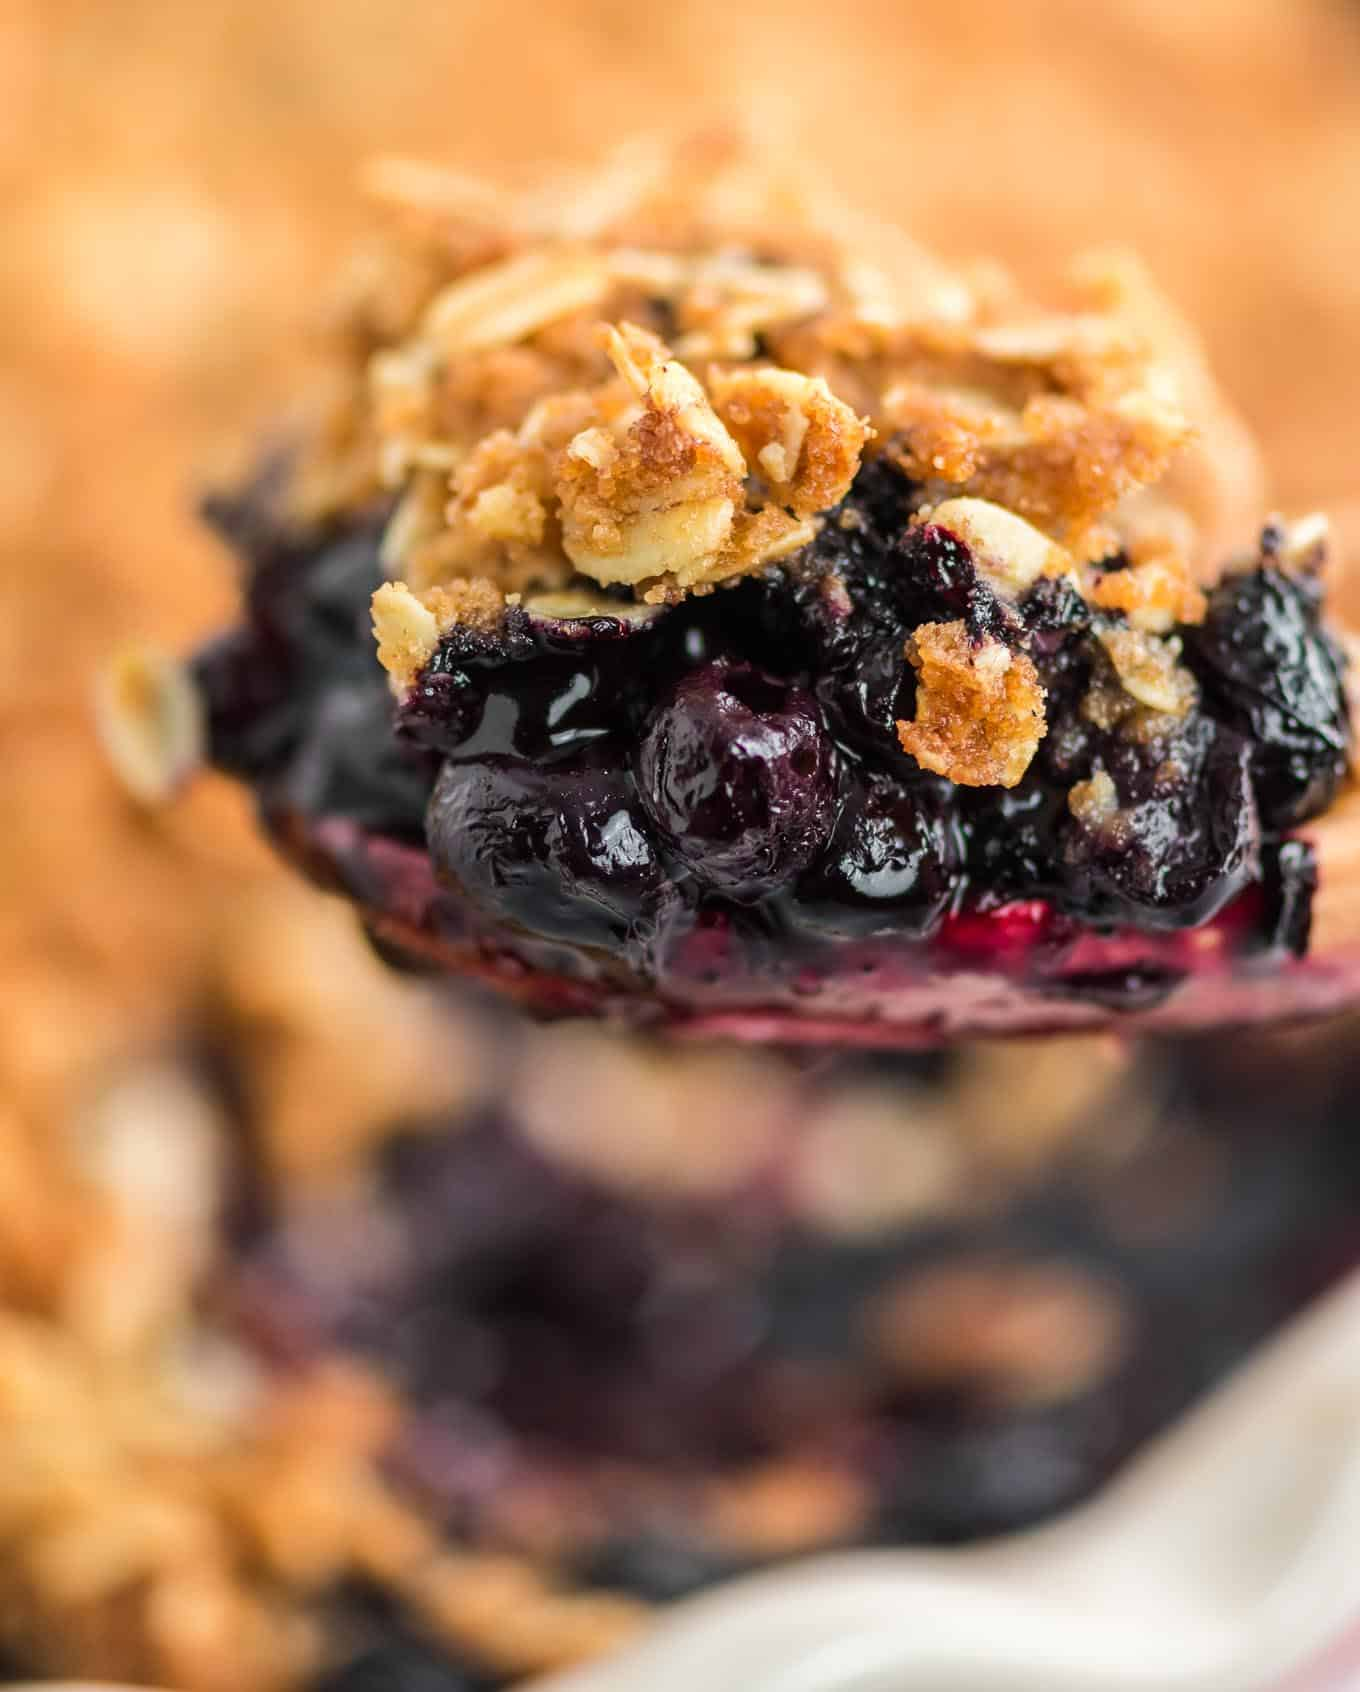 up close image of the finished blueberry crisp